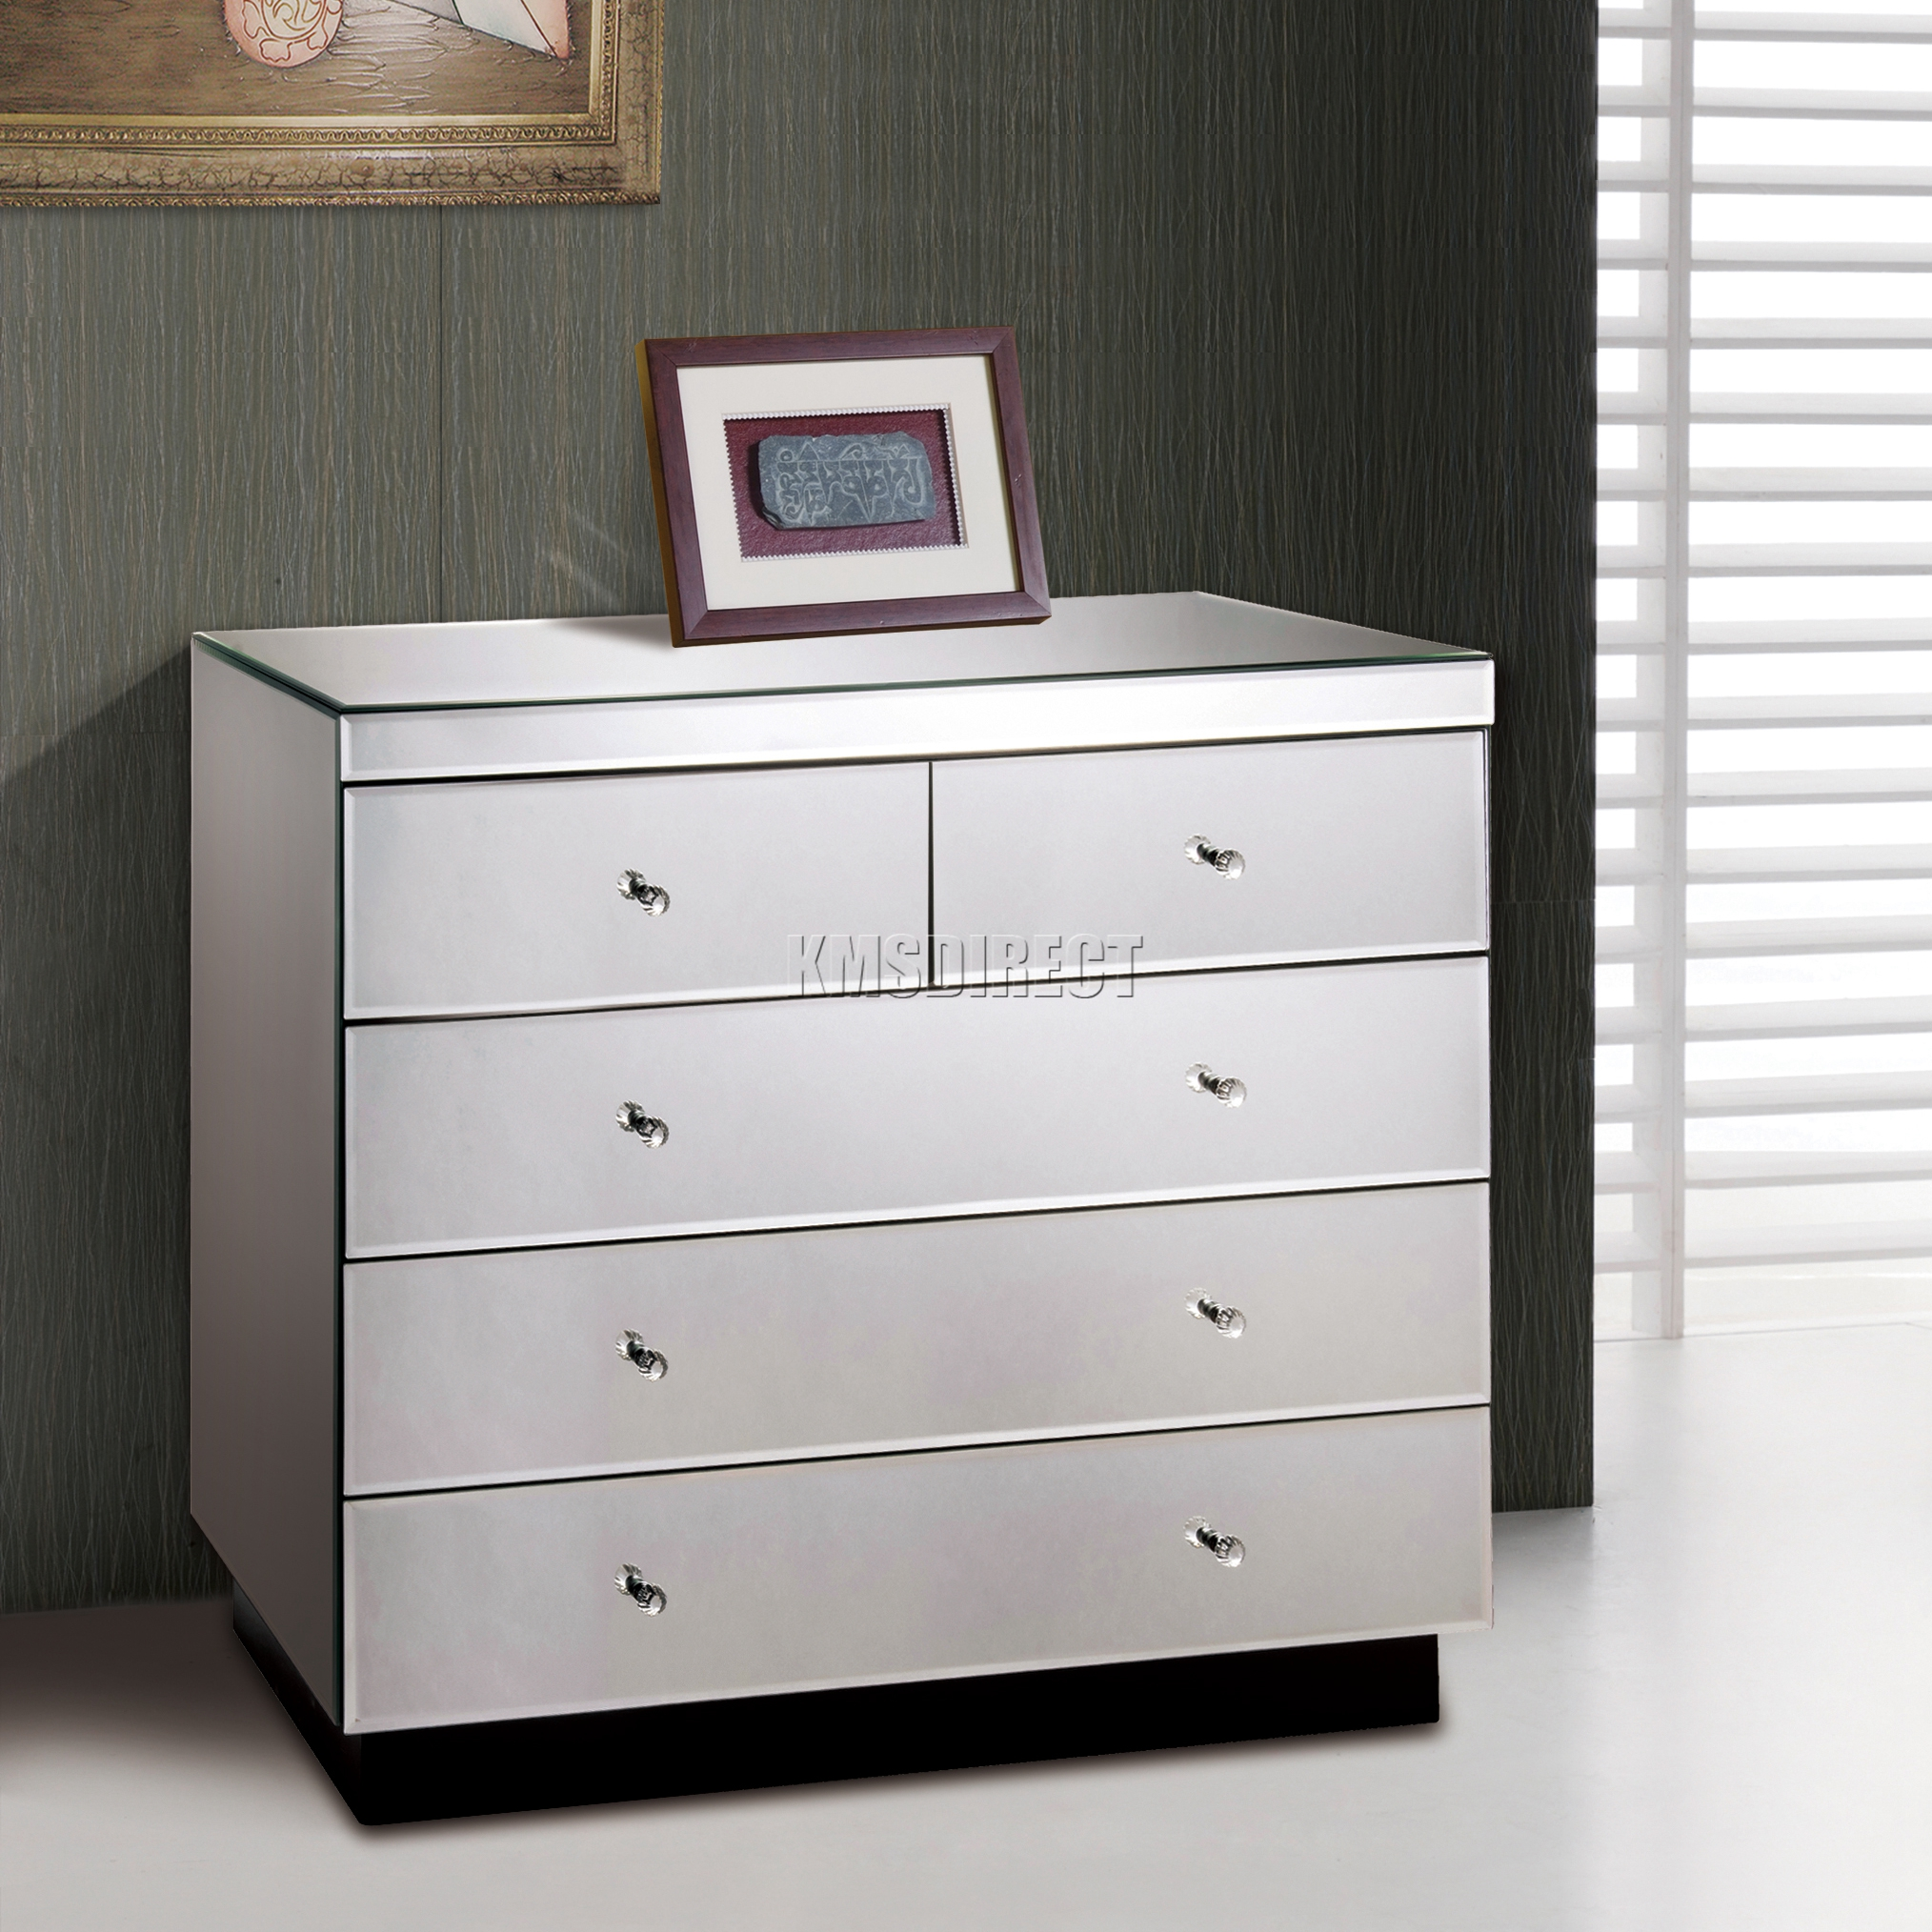 Mirrored Furniture Bedroom Foxhunter Mirrored Furniture Glass With Drawer Chest Cabinet Table